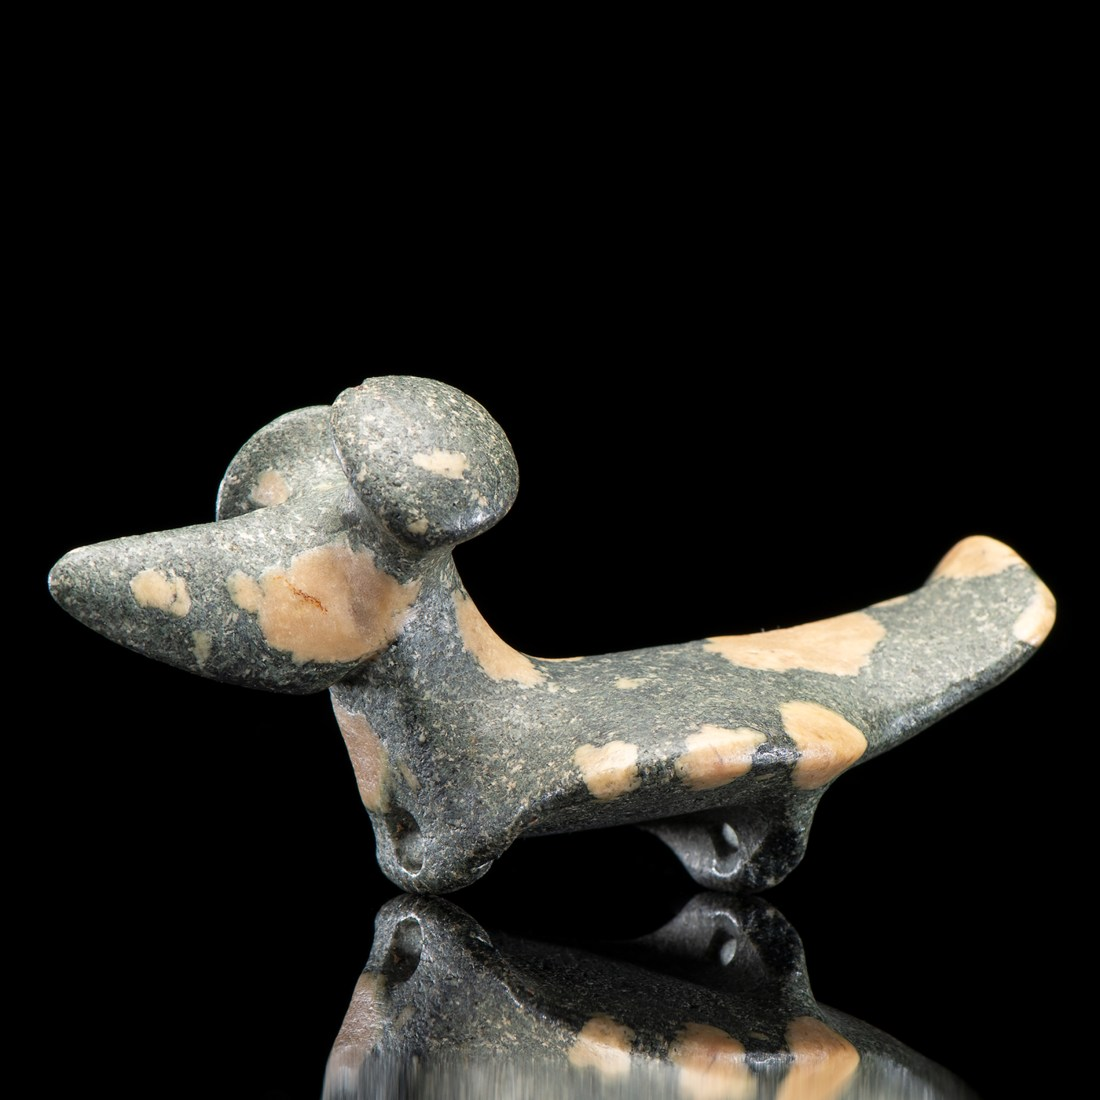 "A porphyry popeye fantail birdstone, created by the people of the Glacial Kame Culture sometime between 3,000 and 500 BCE in what is now DeKalb County, Indiana. It looks like a small dog, except it has two loops where the front and back feet should be. It is slate gray with pale cream-colored blobs of varying sizes across its body. It has two wide nailhead-like protuberances where its ears should be, but the protuberances are called ""eyes""."